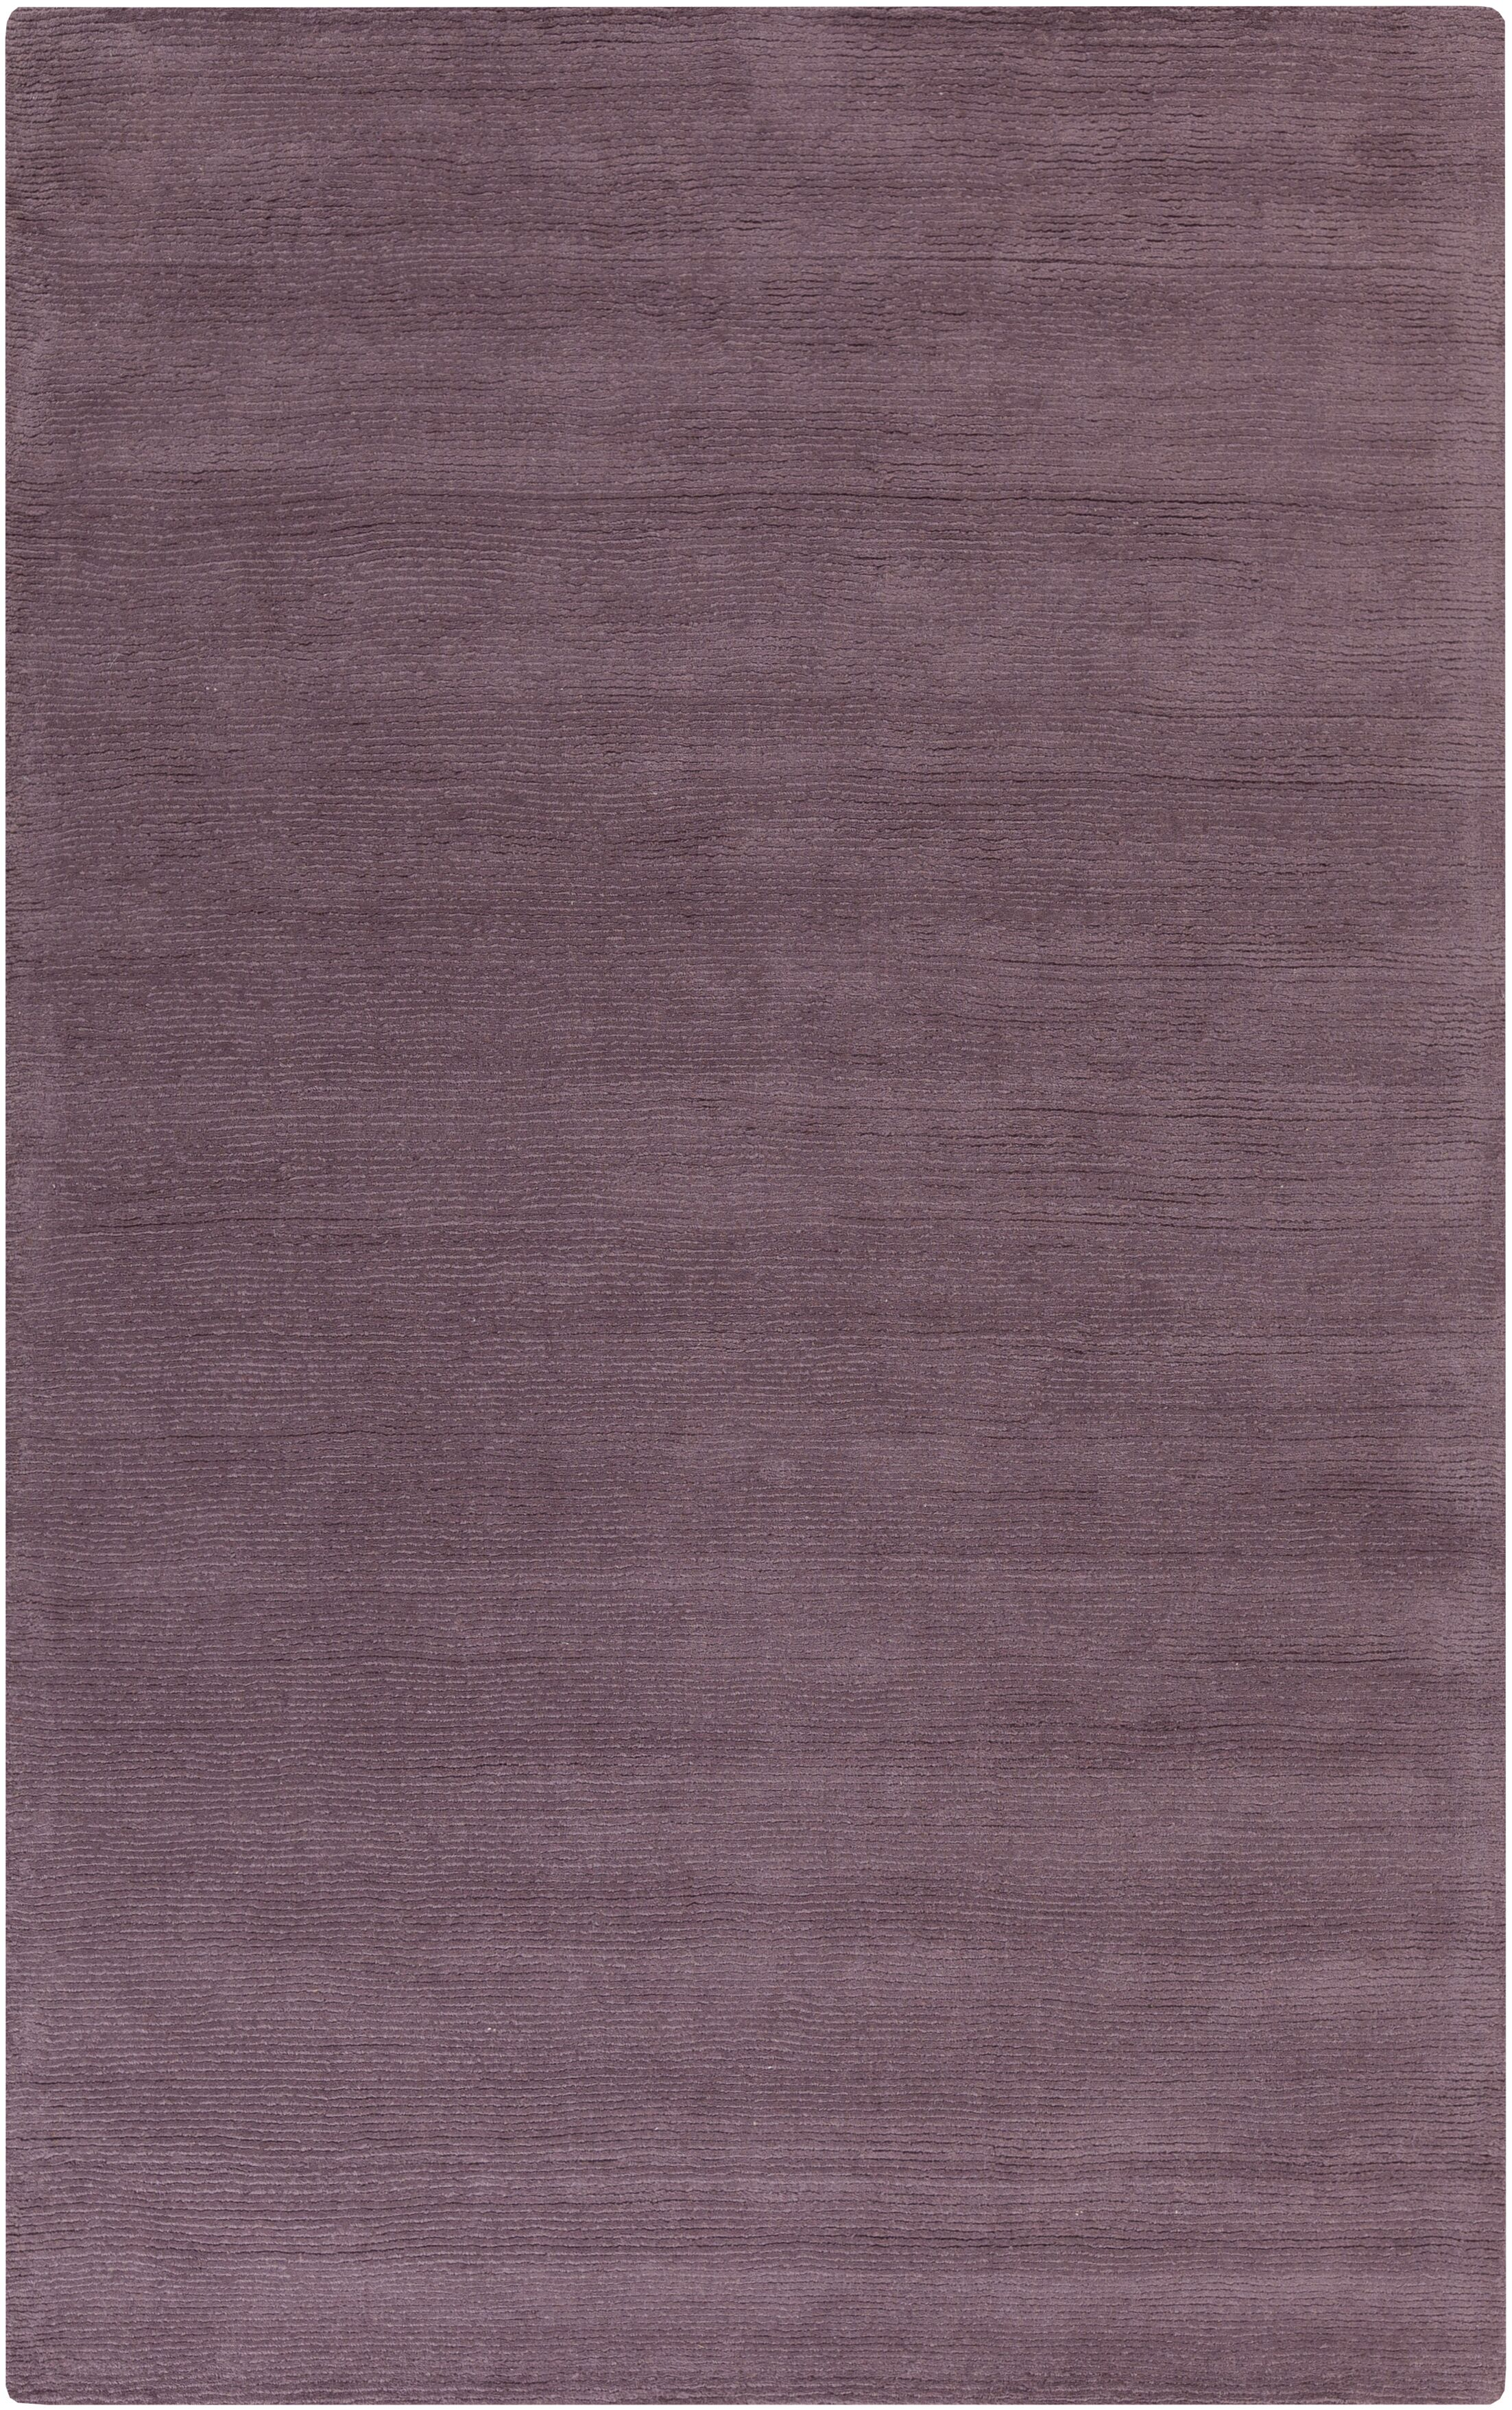 Naples Hand Woven Mauve Area Rug Rug Size: Rectangle 12' x 15'